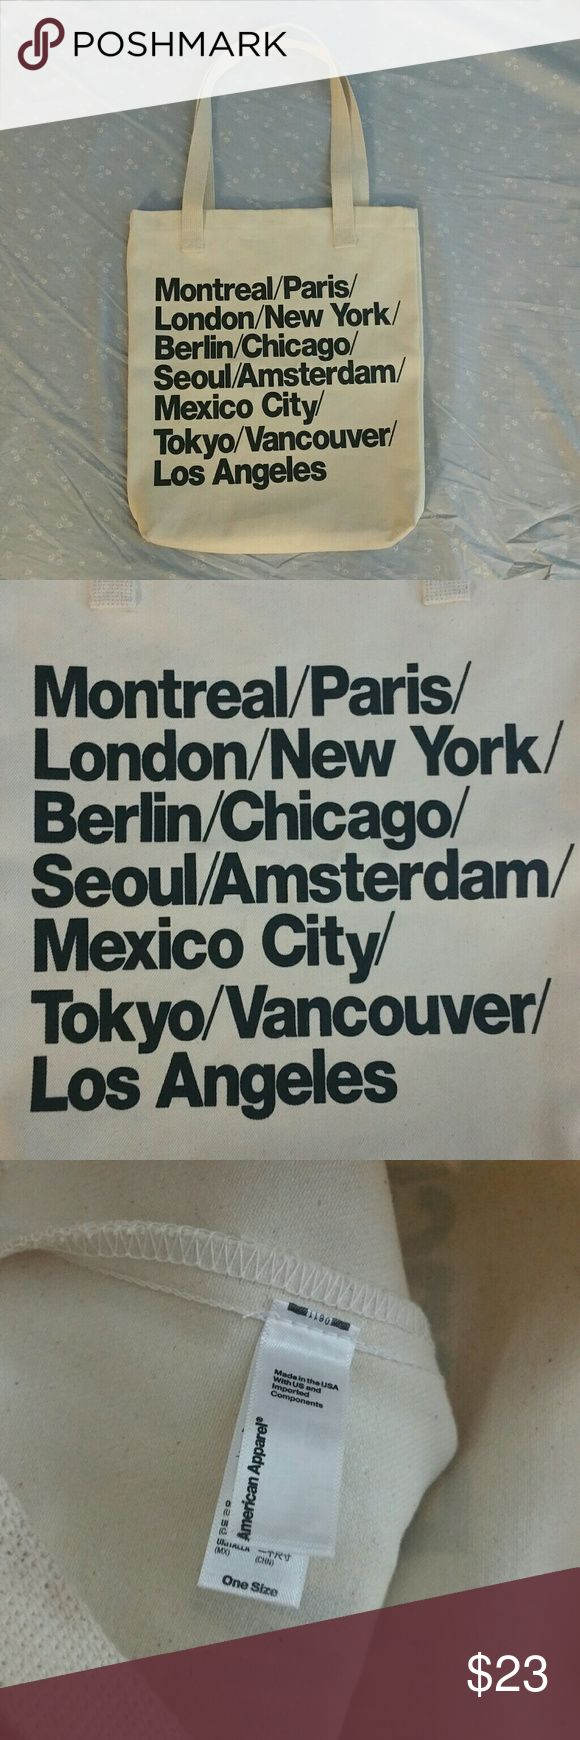 American Apparel cities tote bag Cute canvas tote bag from AA! This is sold out from stores already, get it while you can! Can be worn as a shoulder bag or handbag NWOT American Apparel Bags Totes